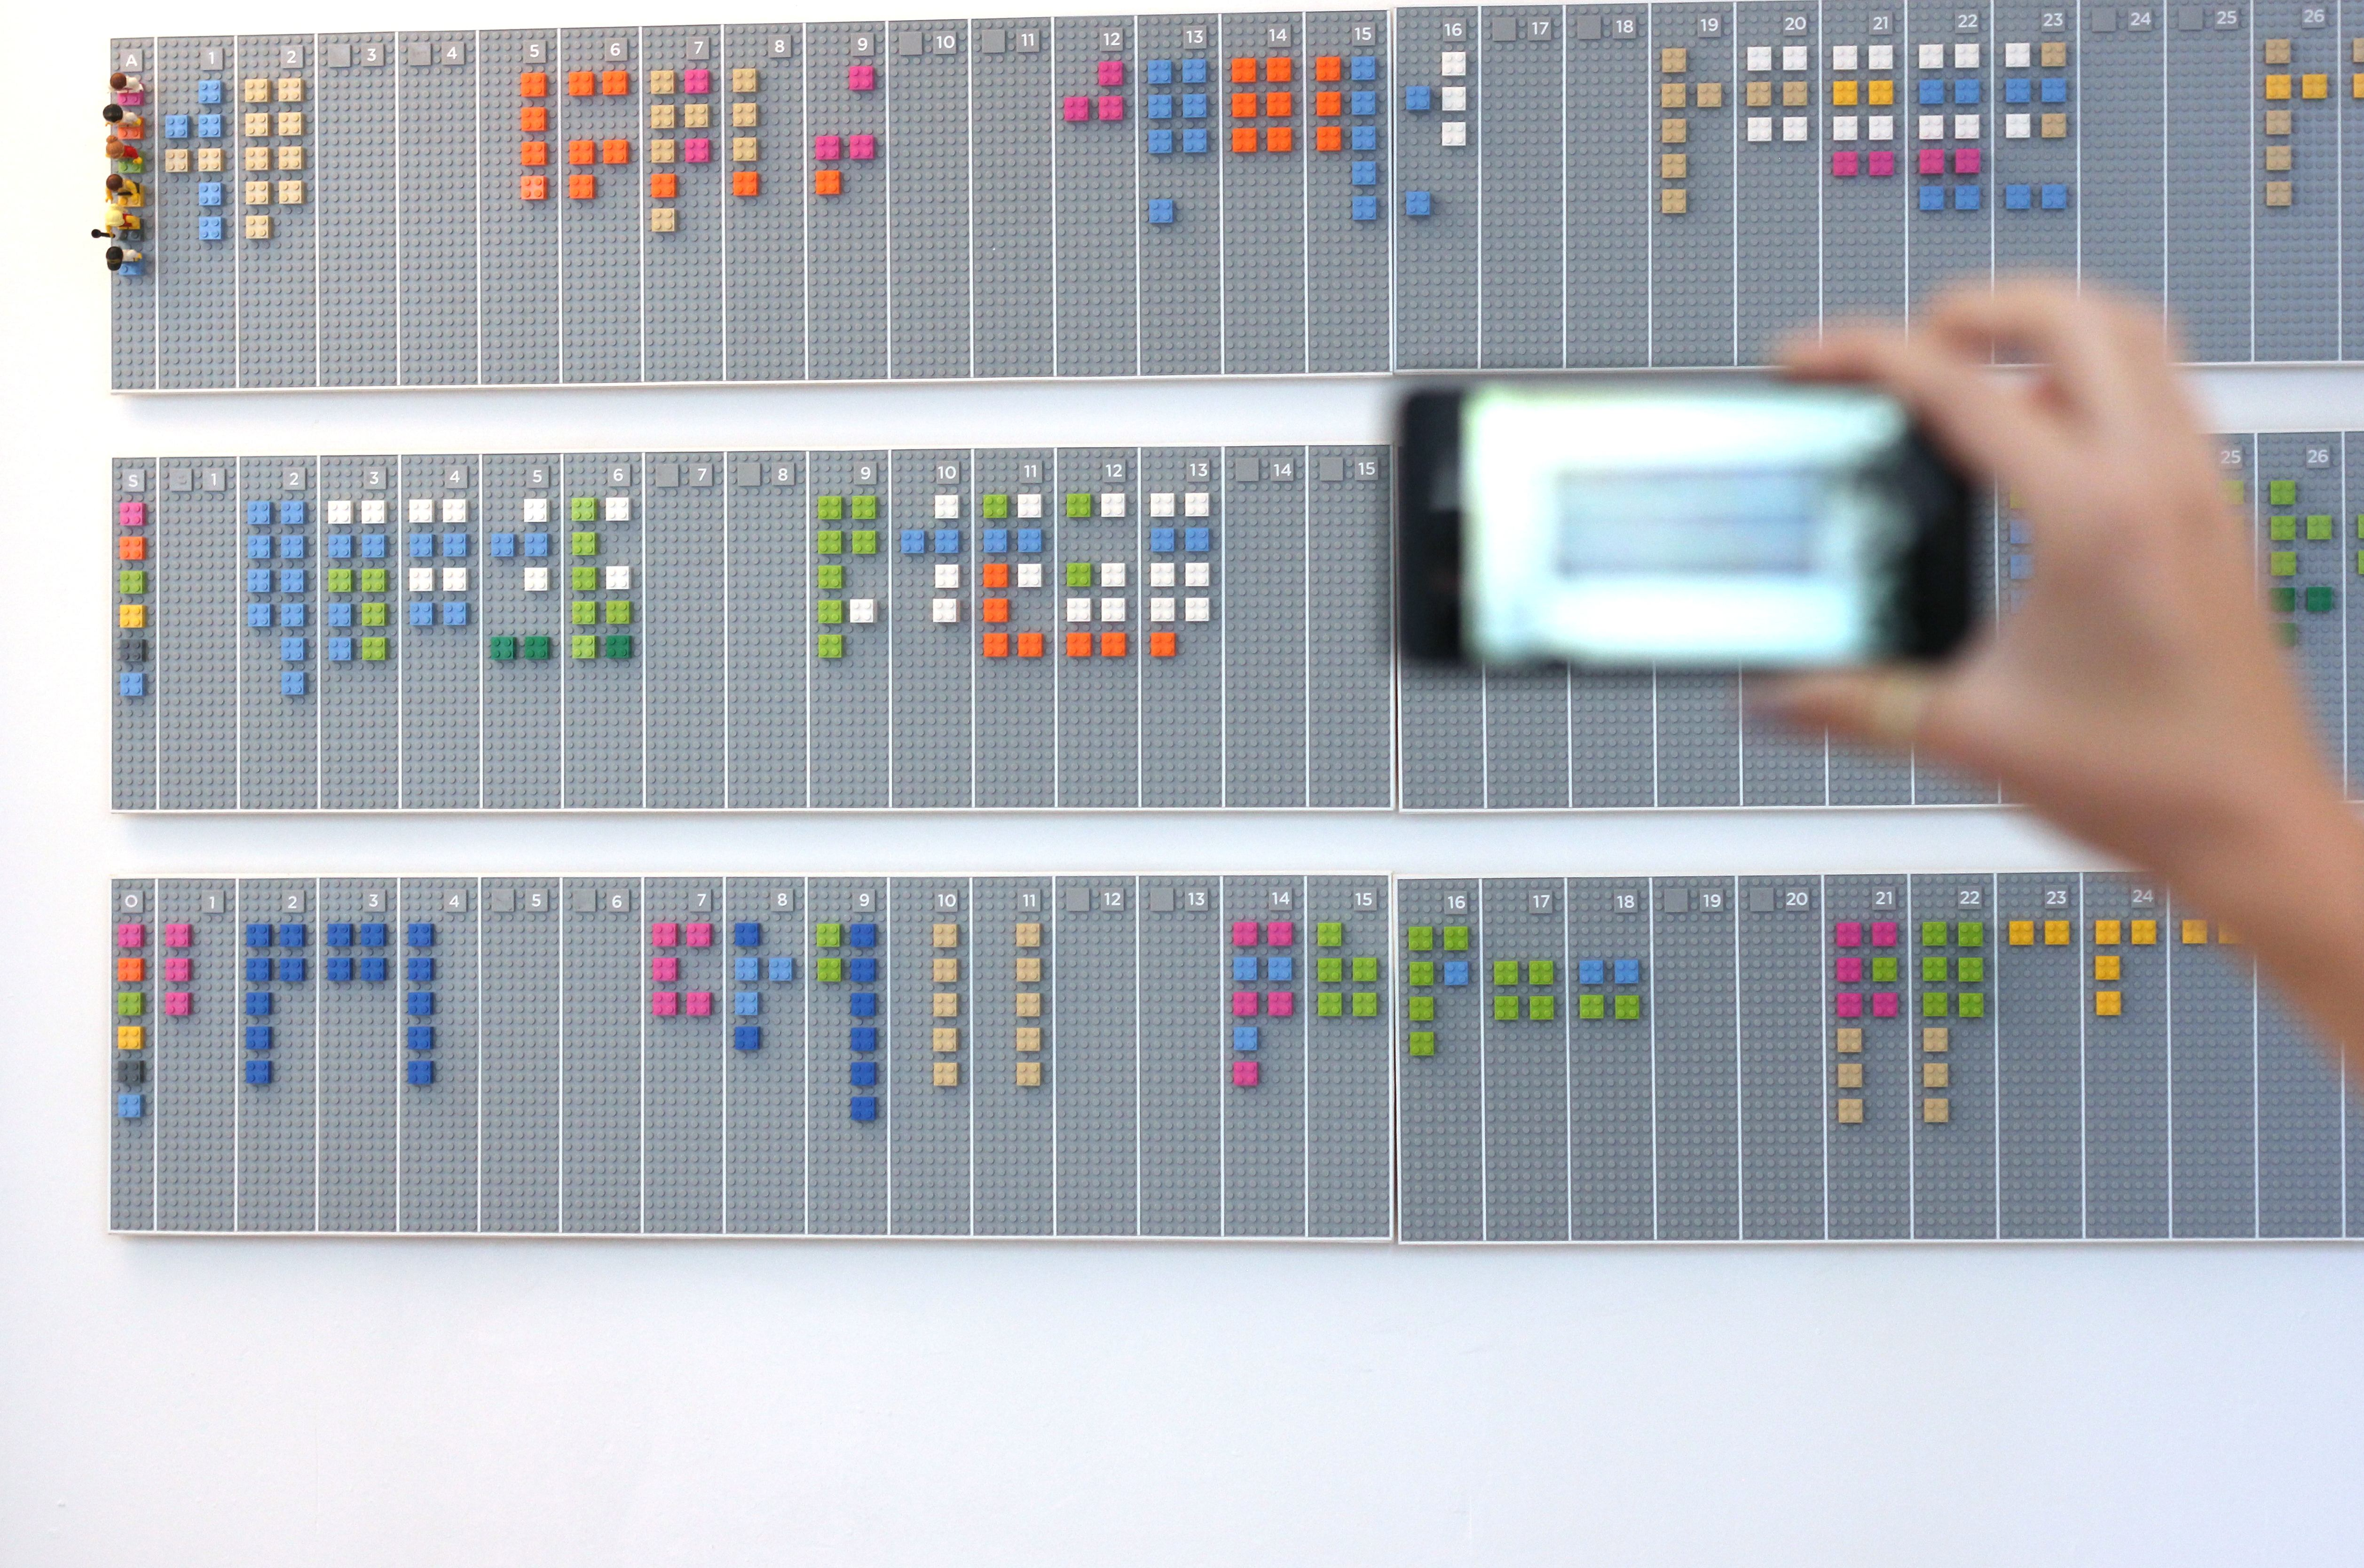 lego This awesome LEGO wall planner syncs digitally with your Google Calendar account